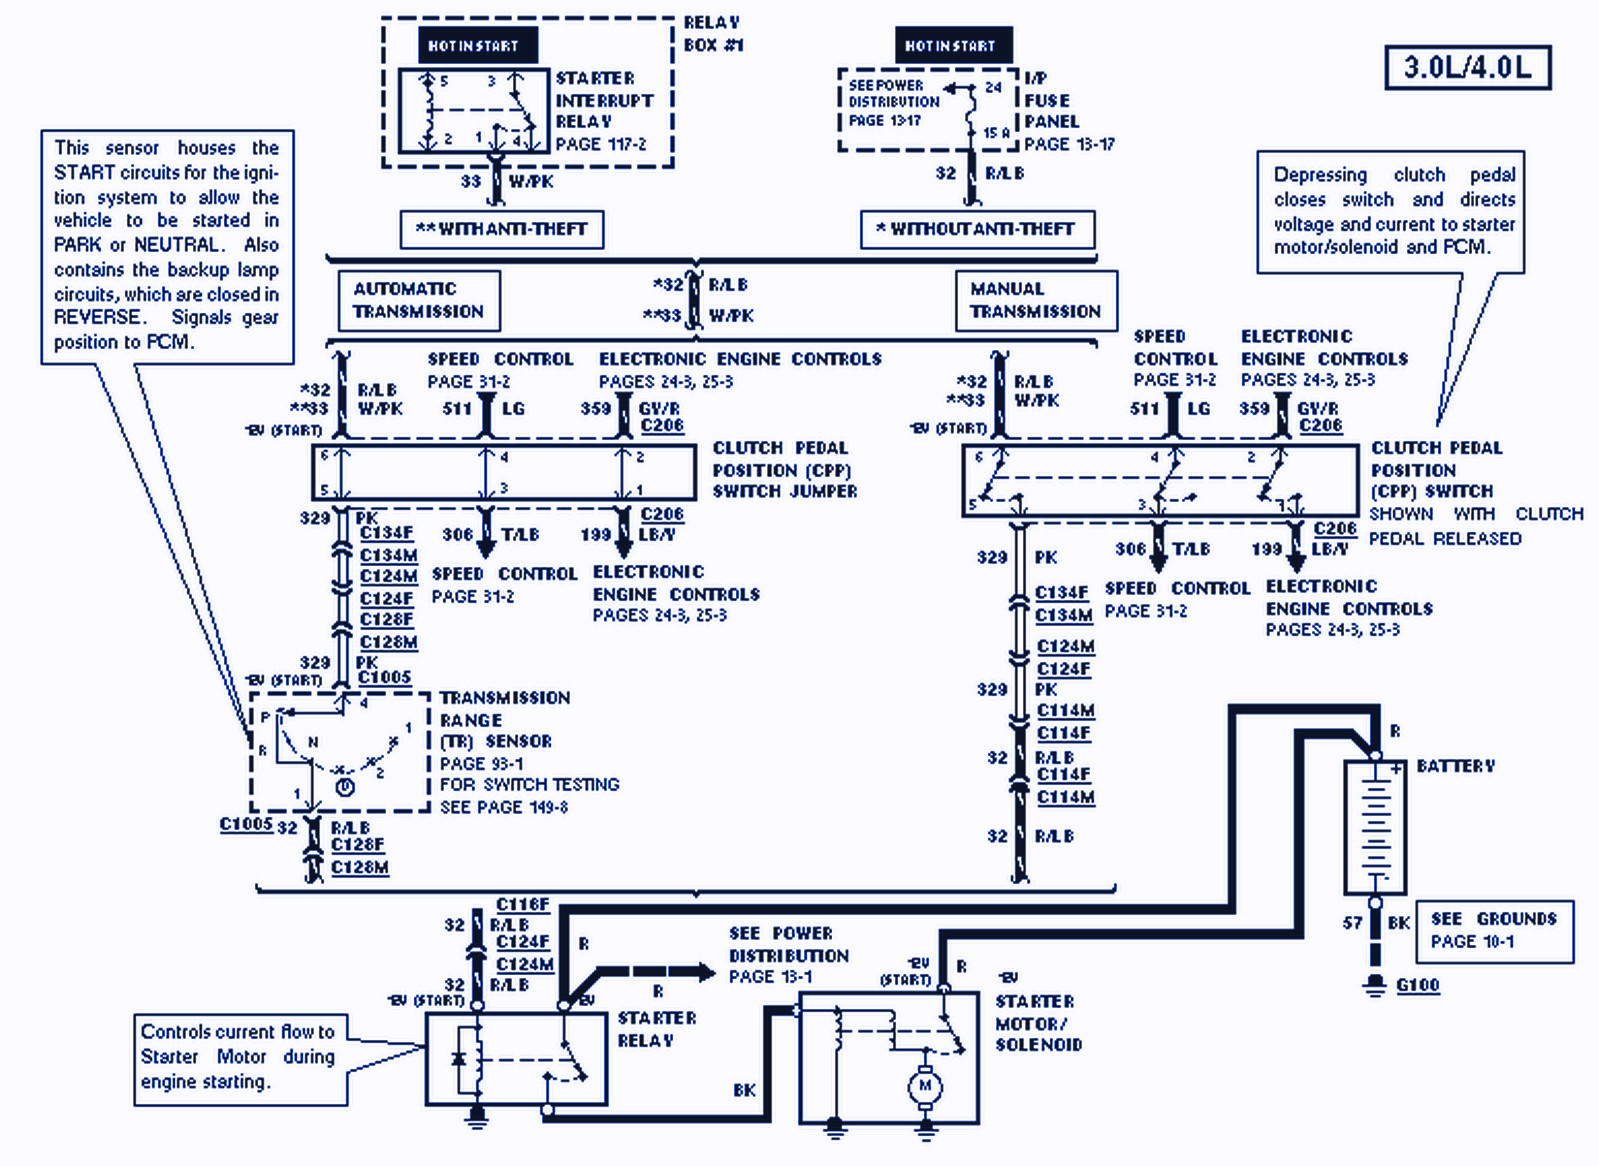 1995 ford e350 wiring diagram simple wiring diagram rh david huggett co uk [ 1599 x 1166 Pixel ]